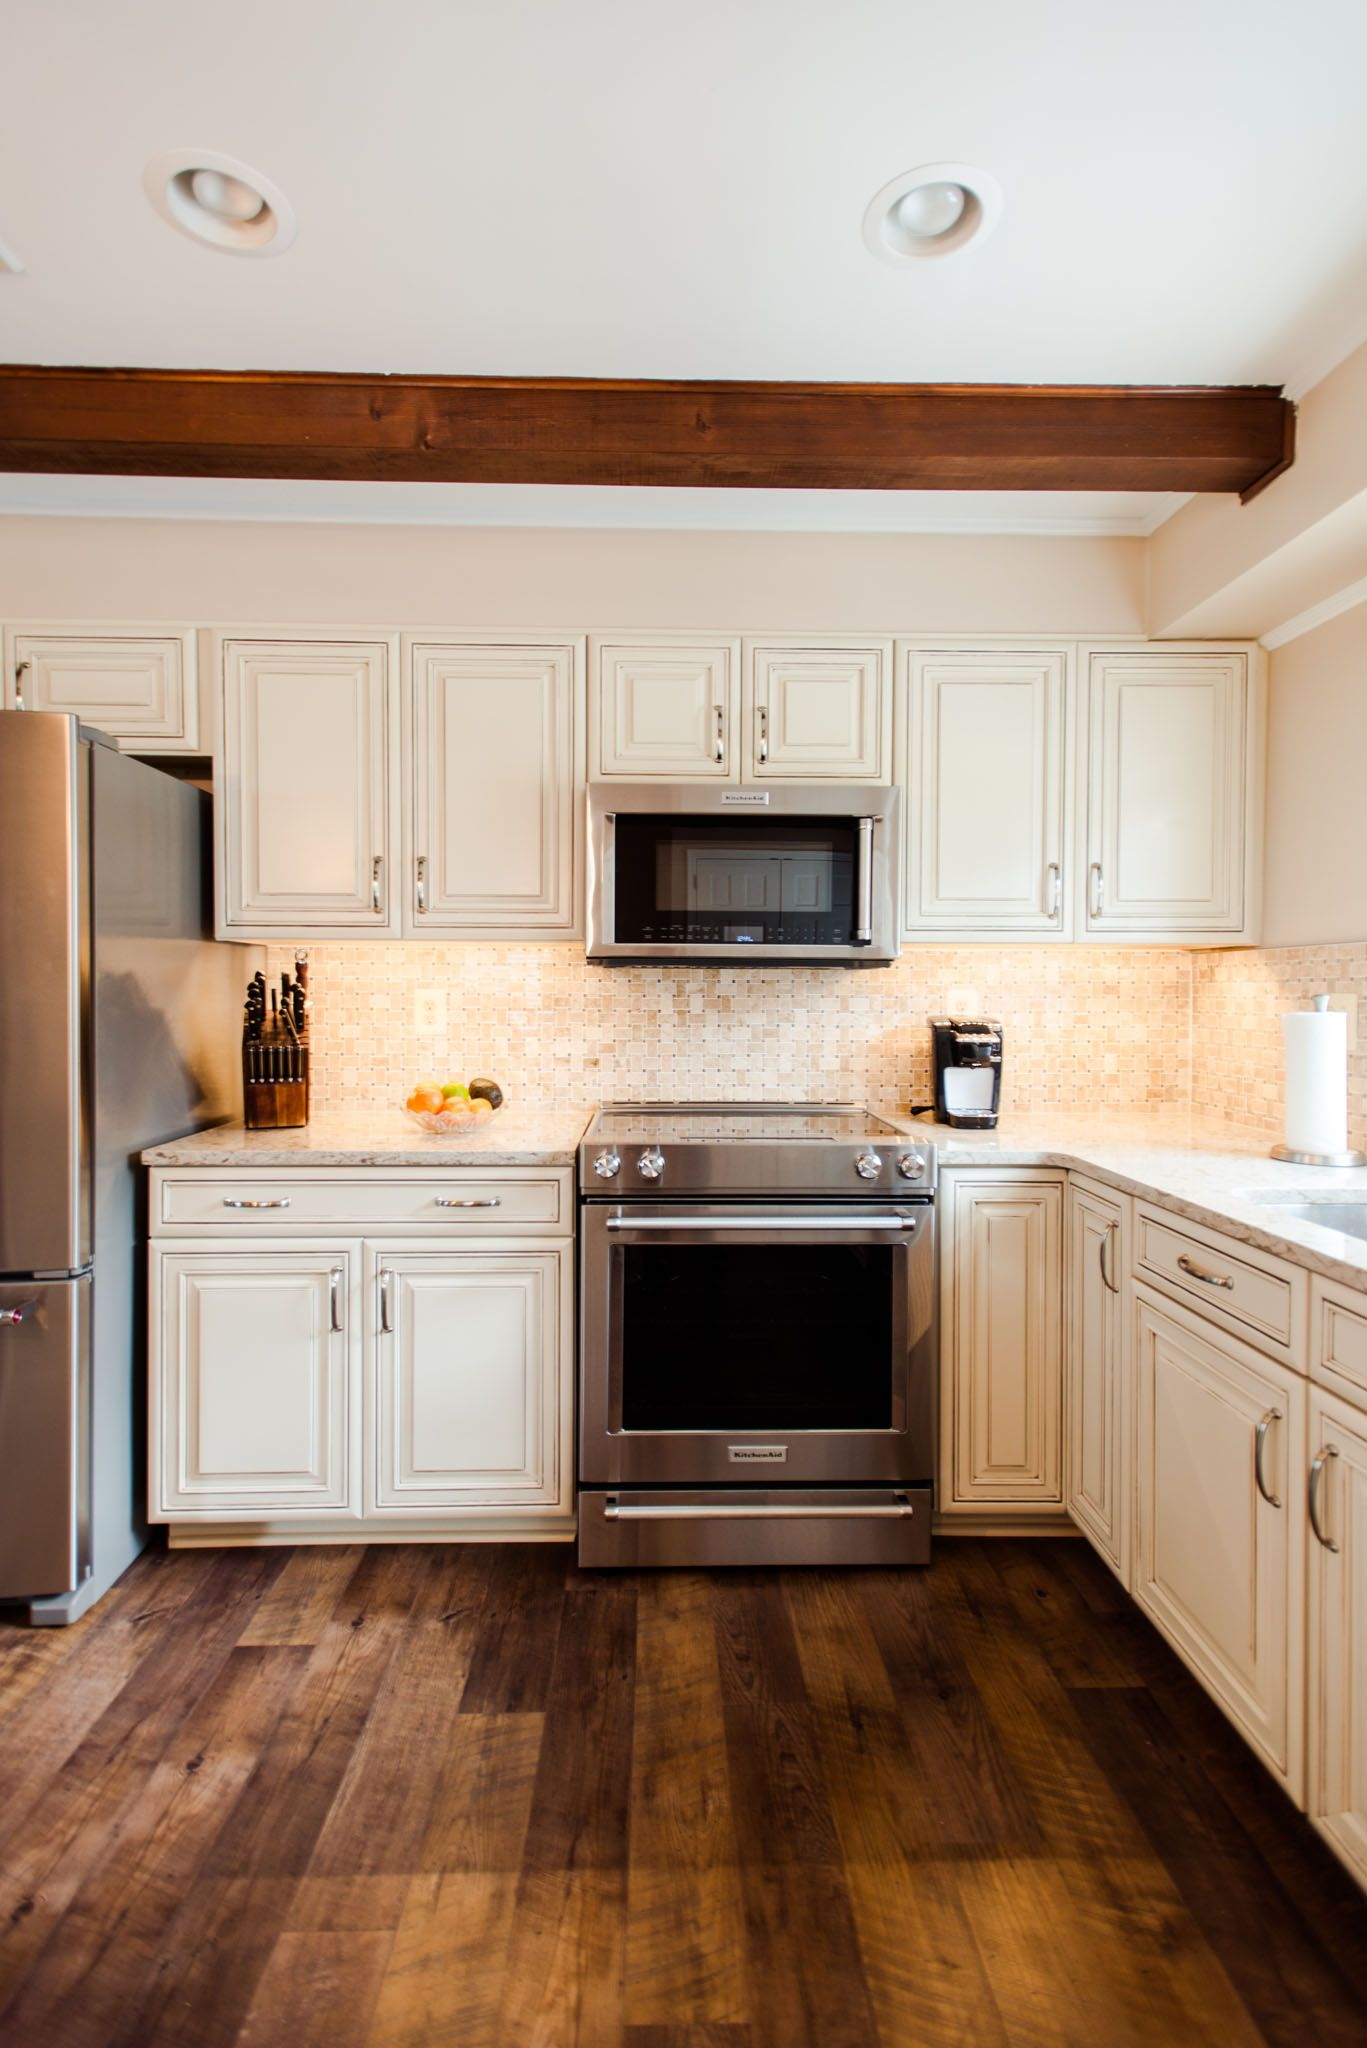 Brothers Services Is Maryland S Full Service Remodeler And Contractor Kitchen Remodel Kitchen Redesign Kitchen Space